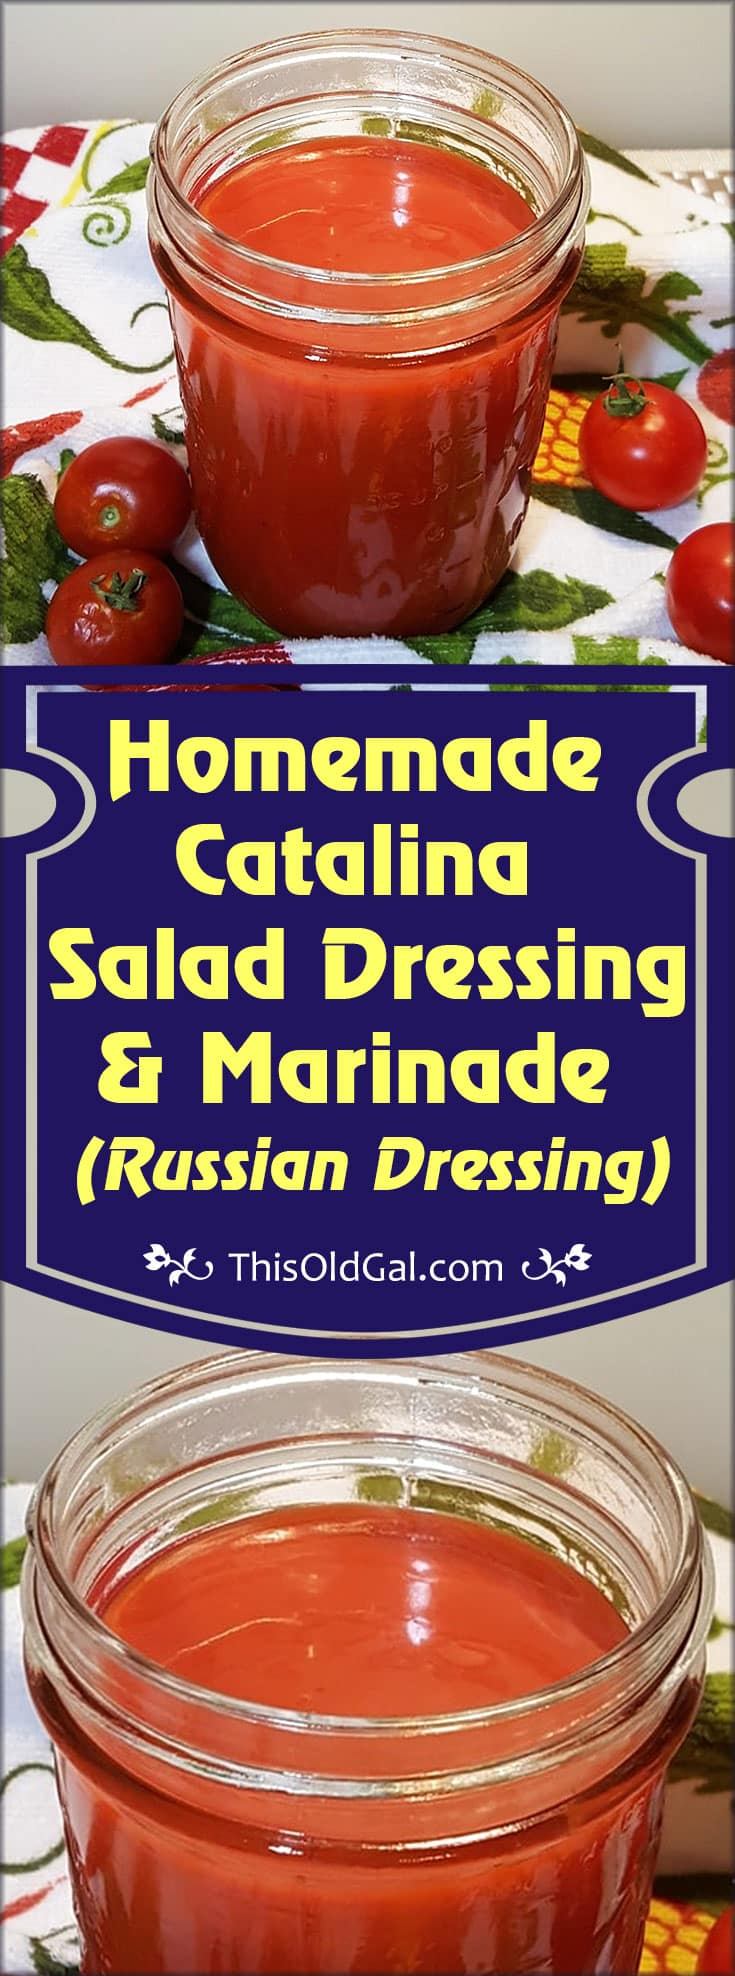 Homemade Catalina Salad Dressing & Marinade (Russian Dressing)